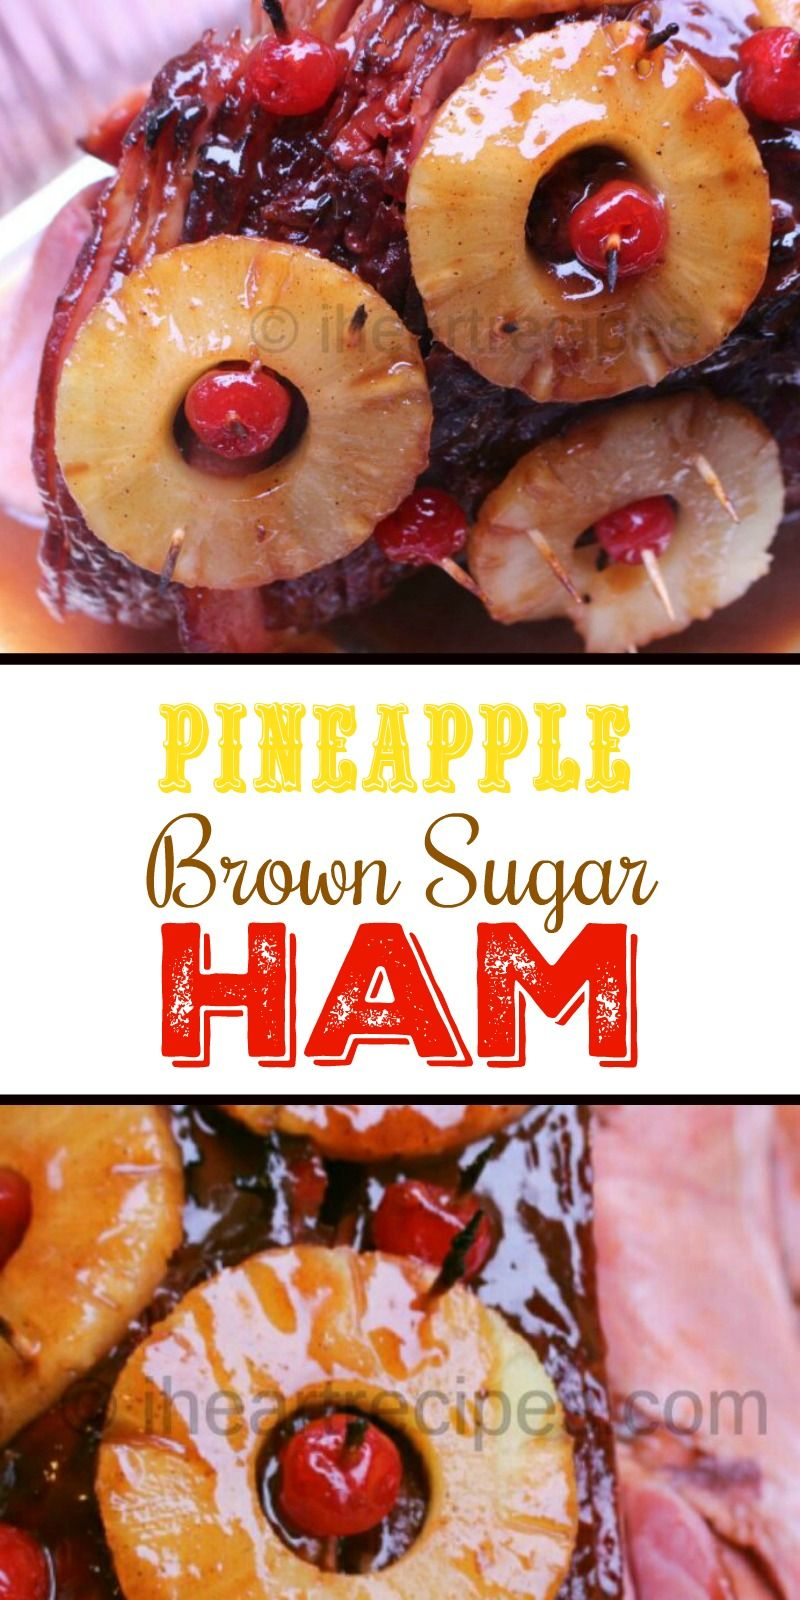 Baked Ham With Pineapple And Brown Sugar Glaze Recipe Baked